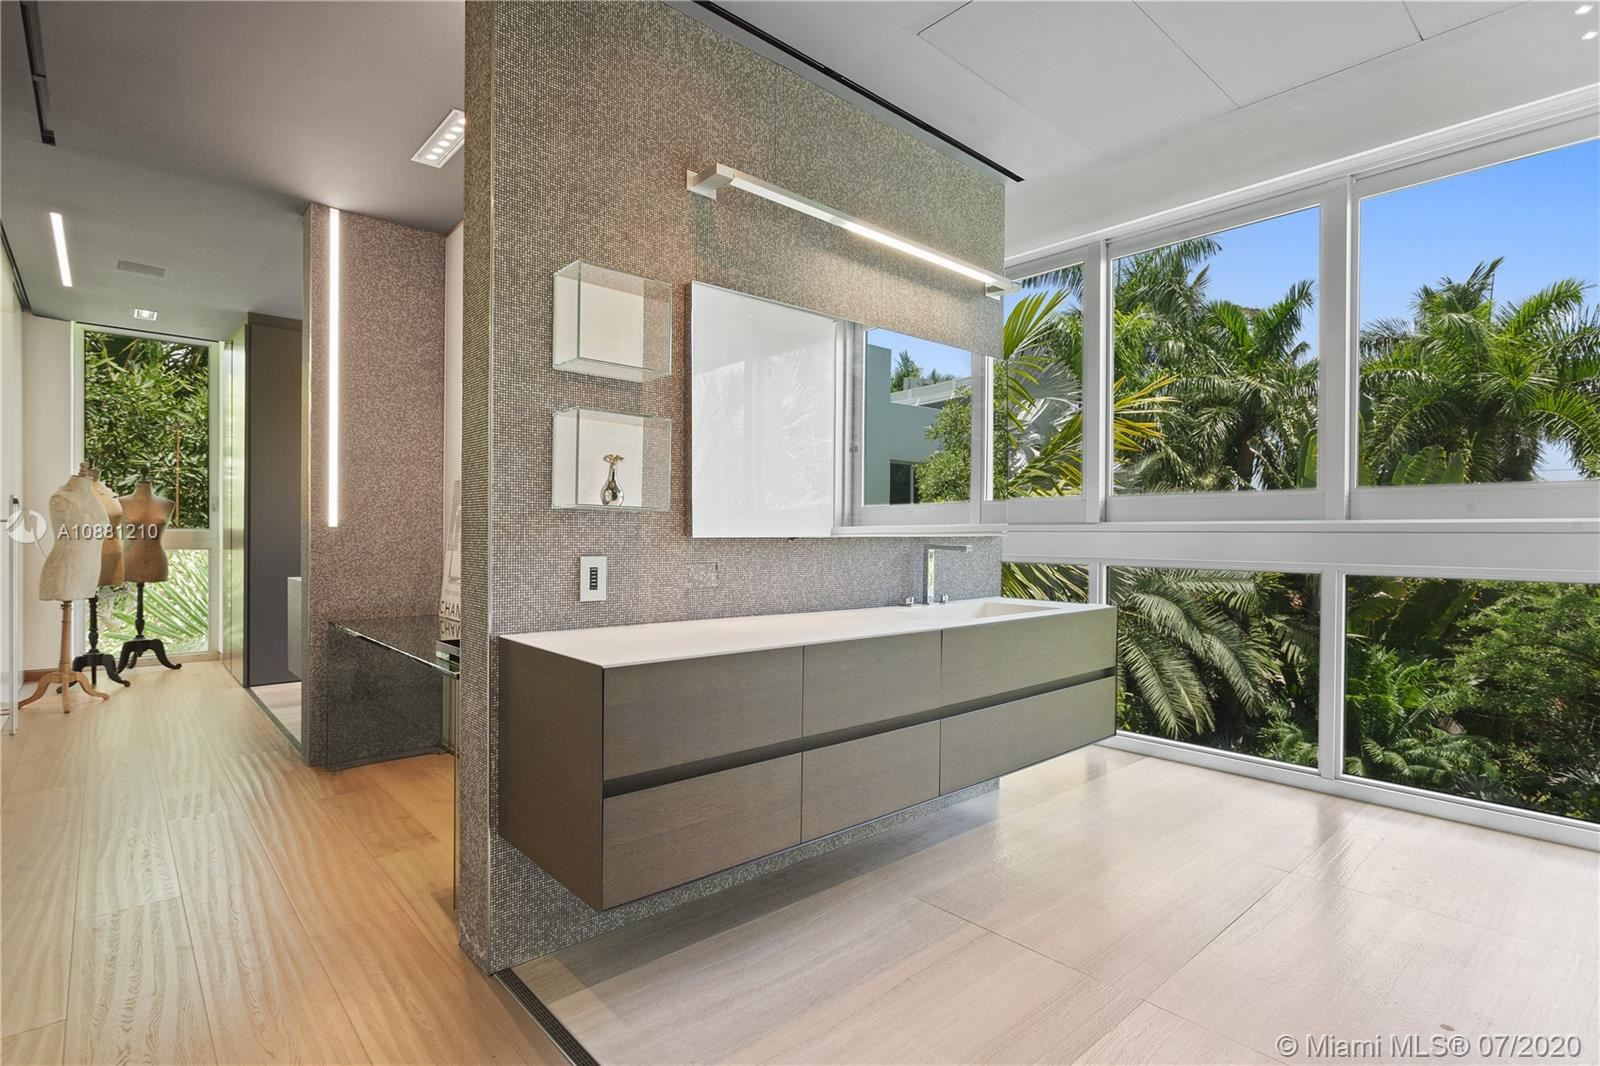 Photo 18 of Listing MLS a10881210 in 370 S Hibiscus Dr Miami Beach FL 33139